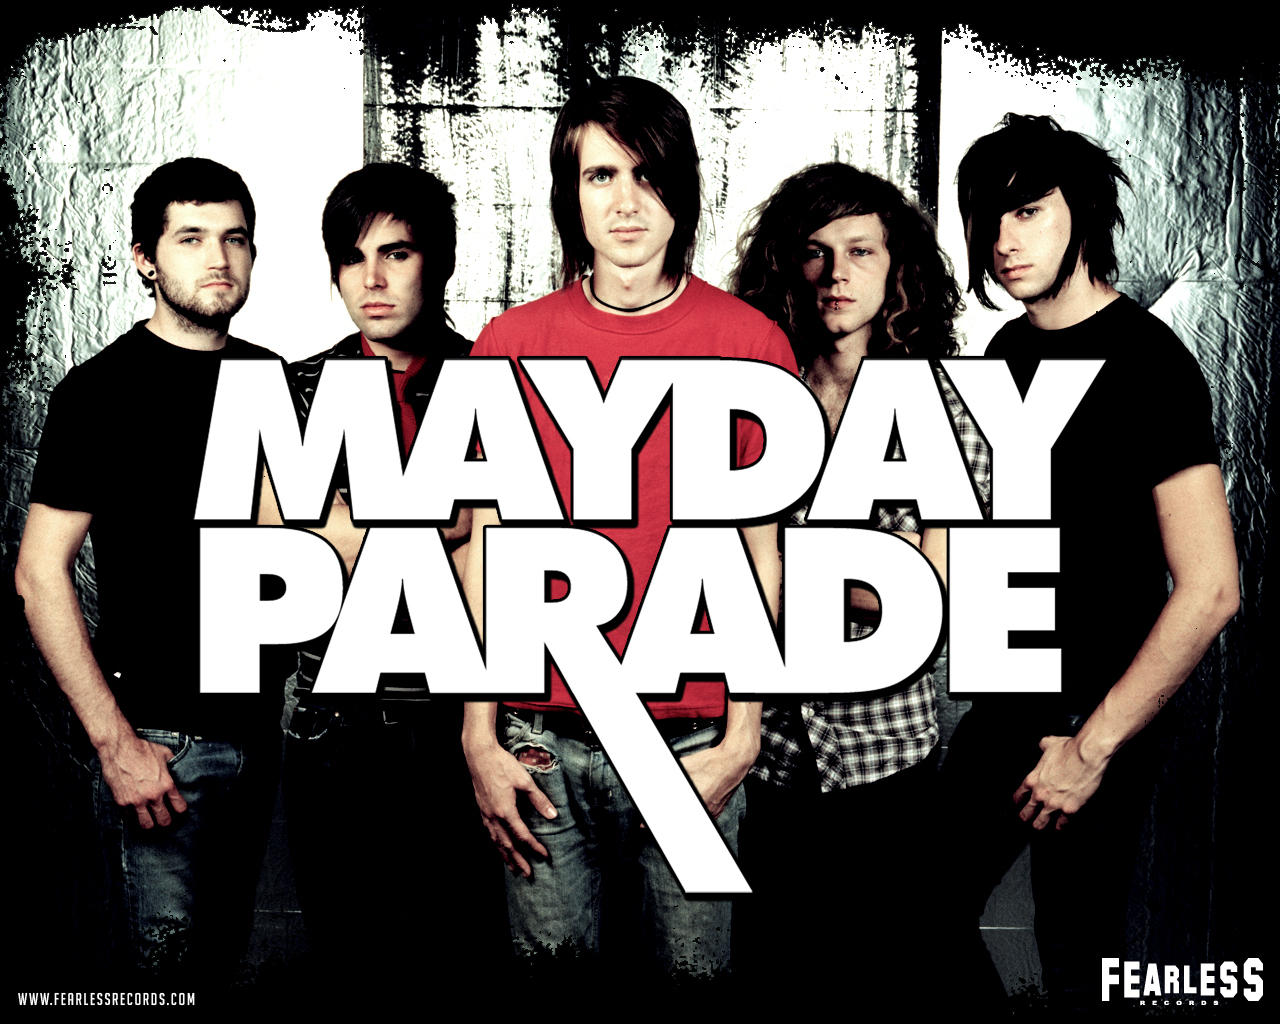 mayday parade wallpaper #9